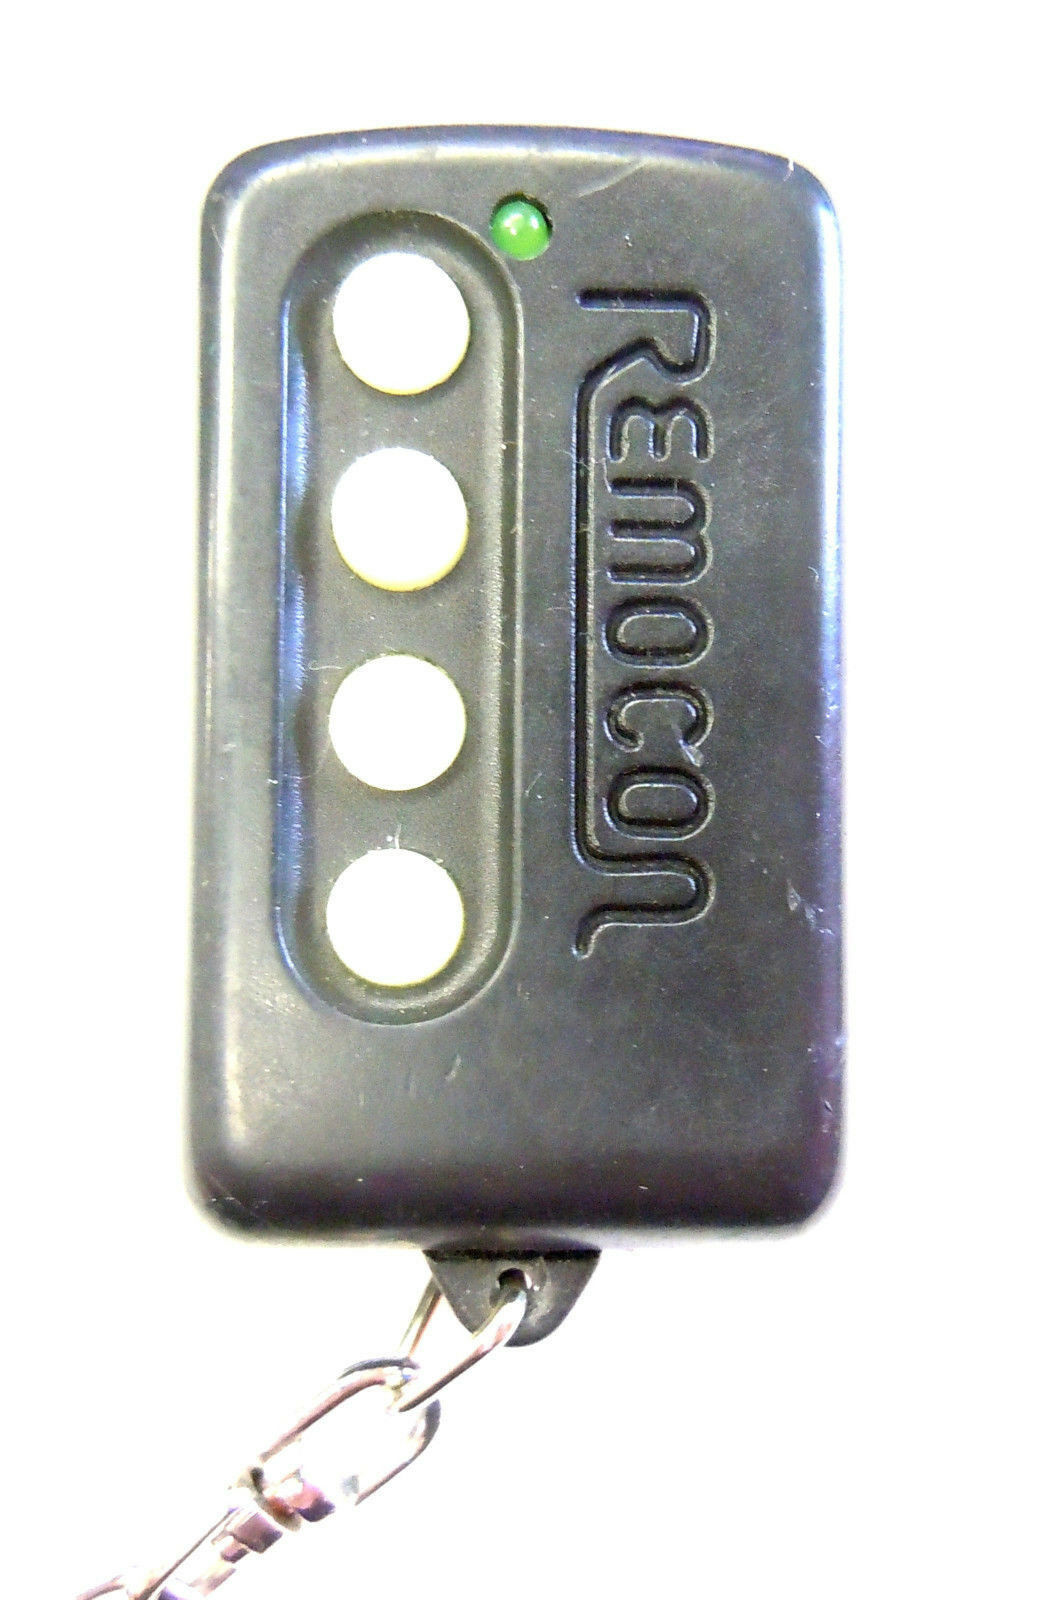 Keyless Entry Remote Remocon Mmorco196m Transmitter Garage